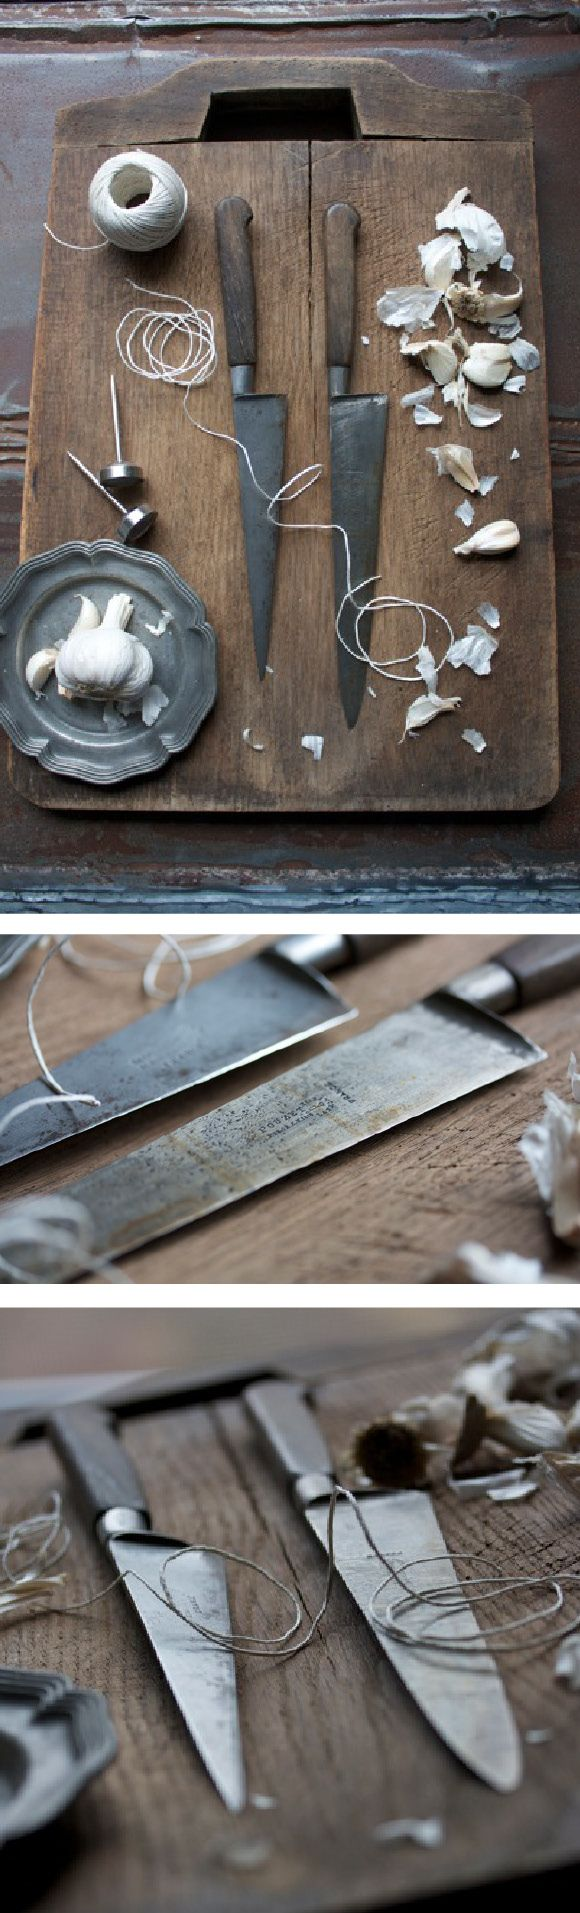 17 best images about chef 39 s knives on pinterest cooking cookware and foodies. Black Bedroom Furniture Sets. Home Design Ideas